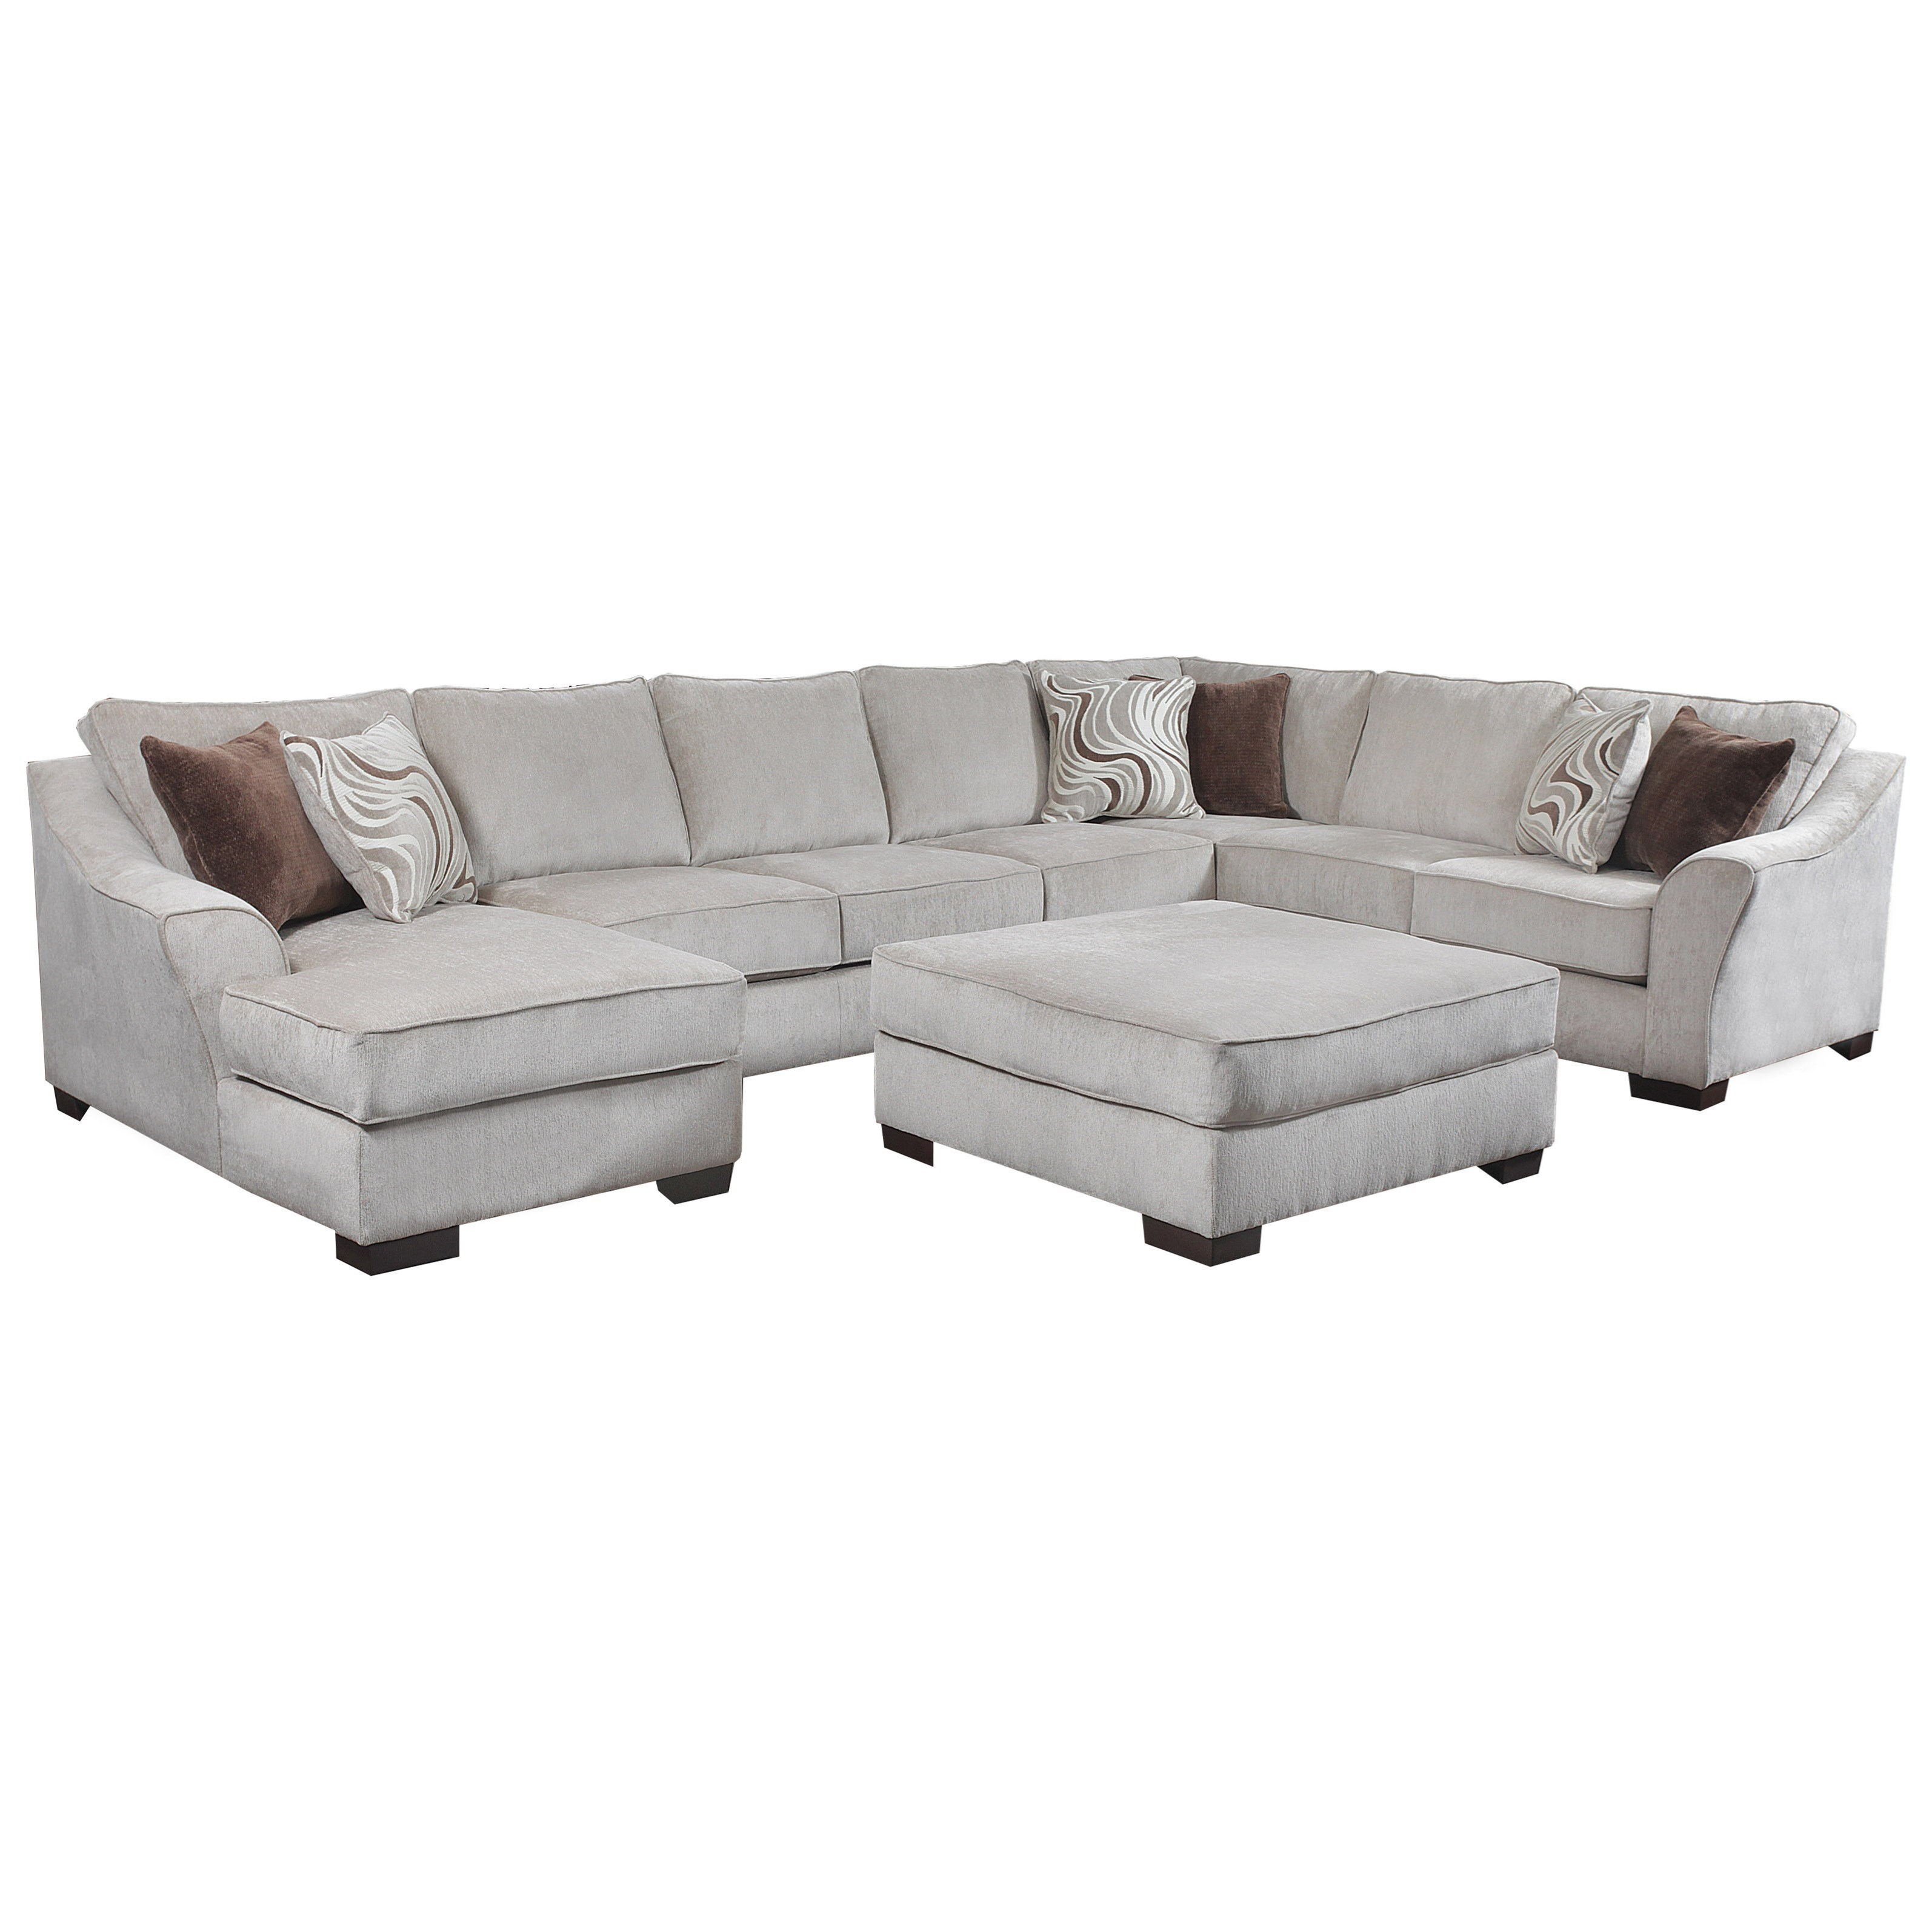 Simmons Upholstery 9355BRTransitional Sectional Sofa